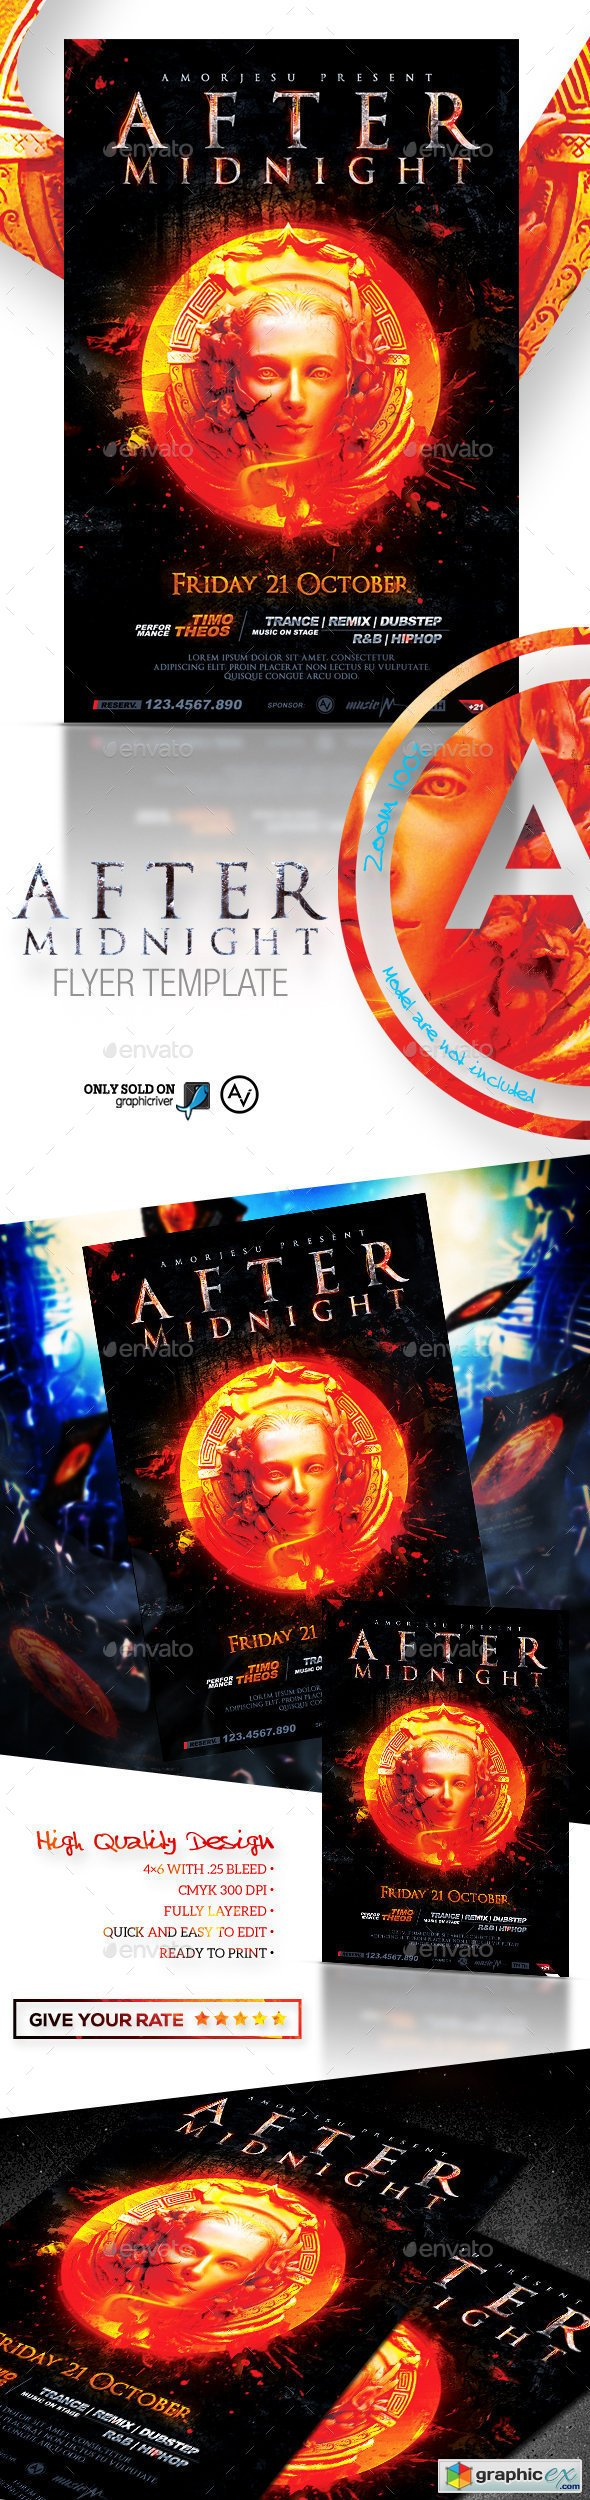 After Midnight Flyer Template